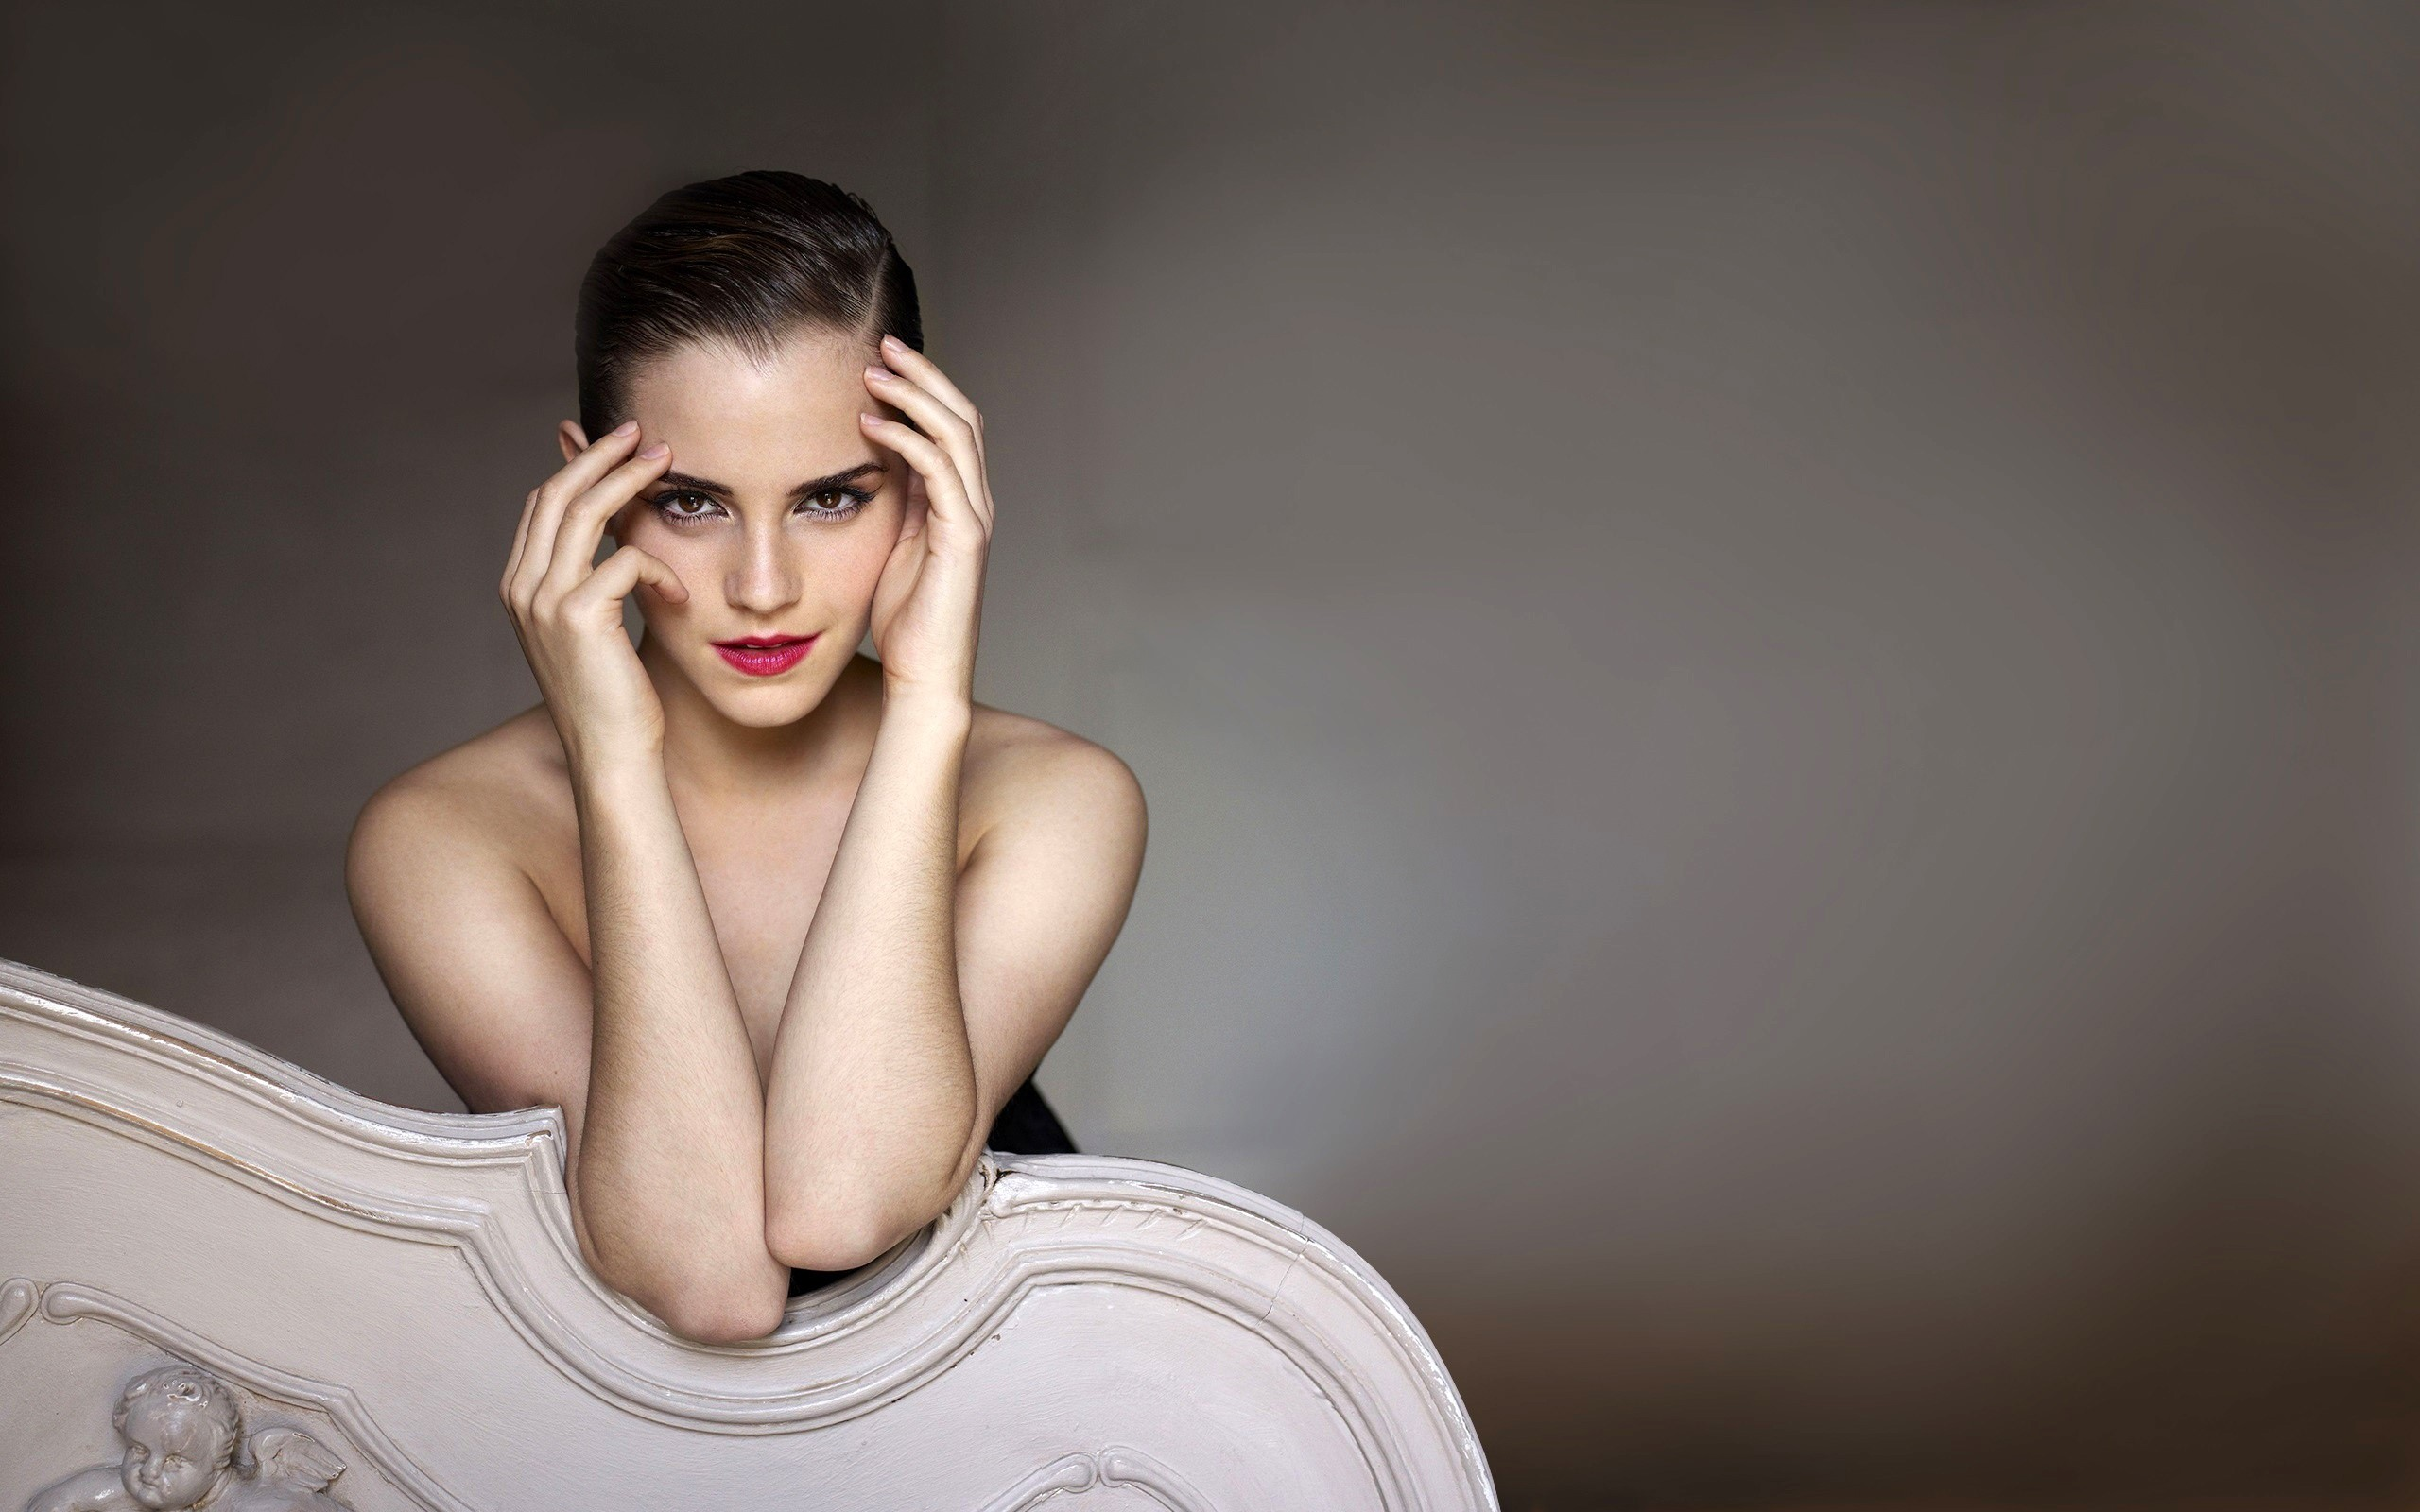 Wallpaper Emma Watson with makeup